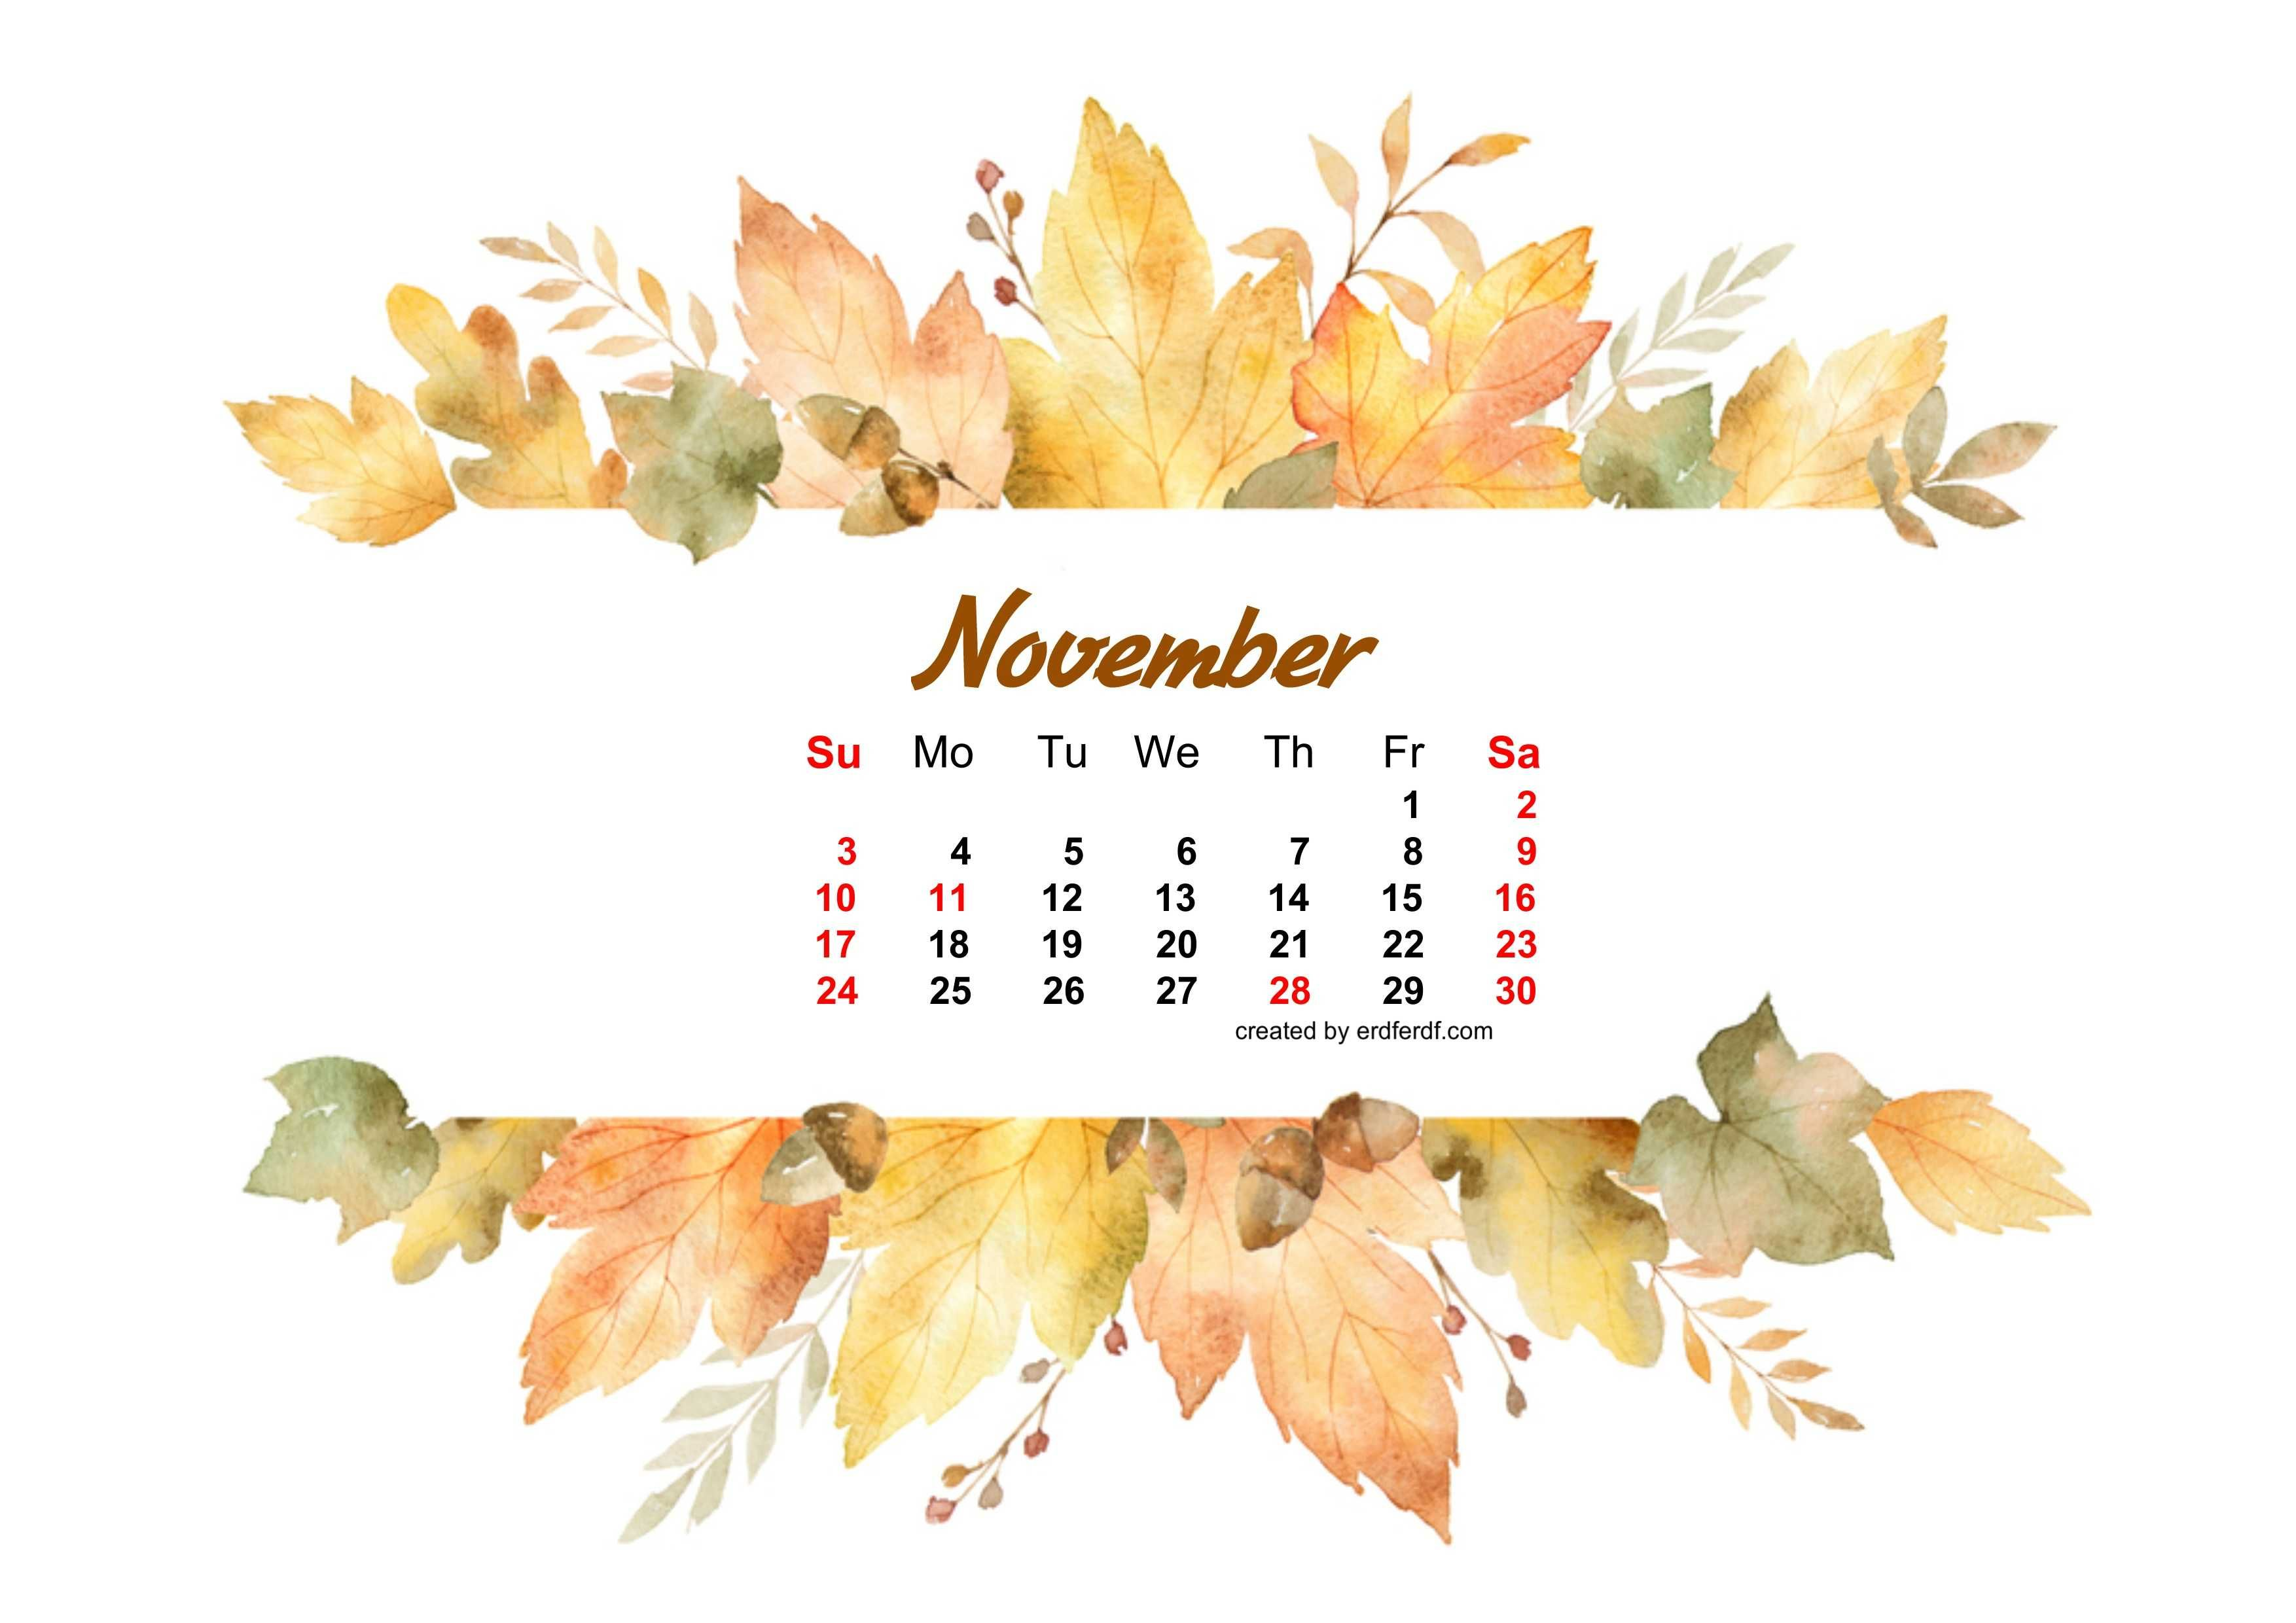 Watercolor Leaf Dried November 2019 Calendar Picture Wallpapers